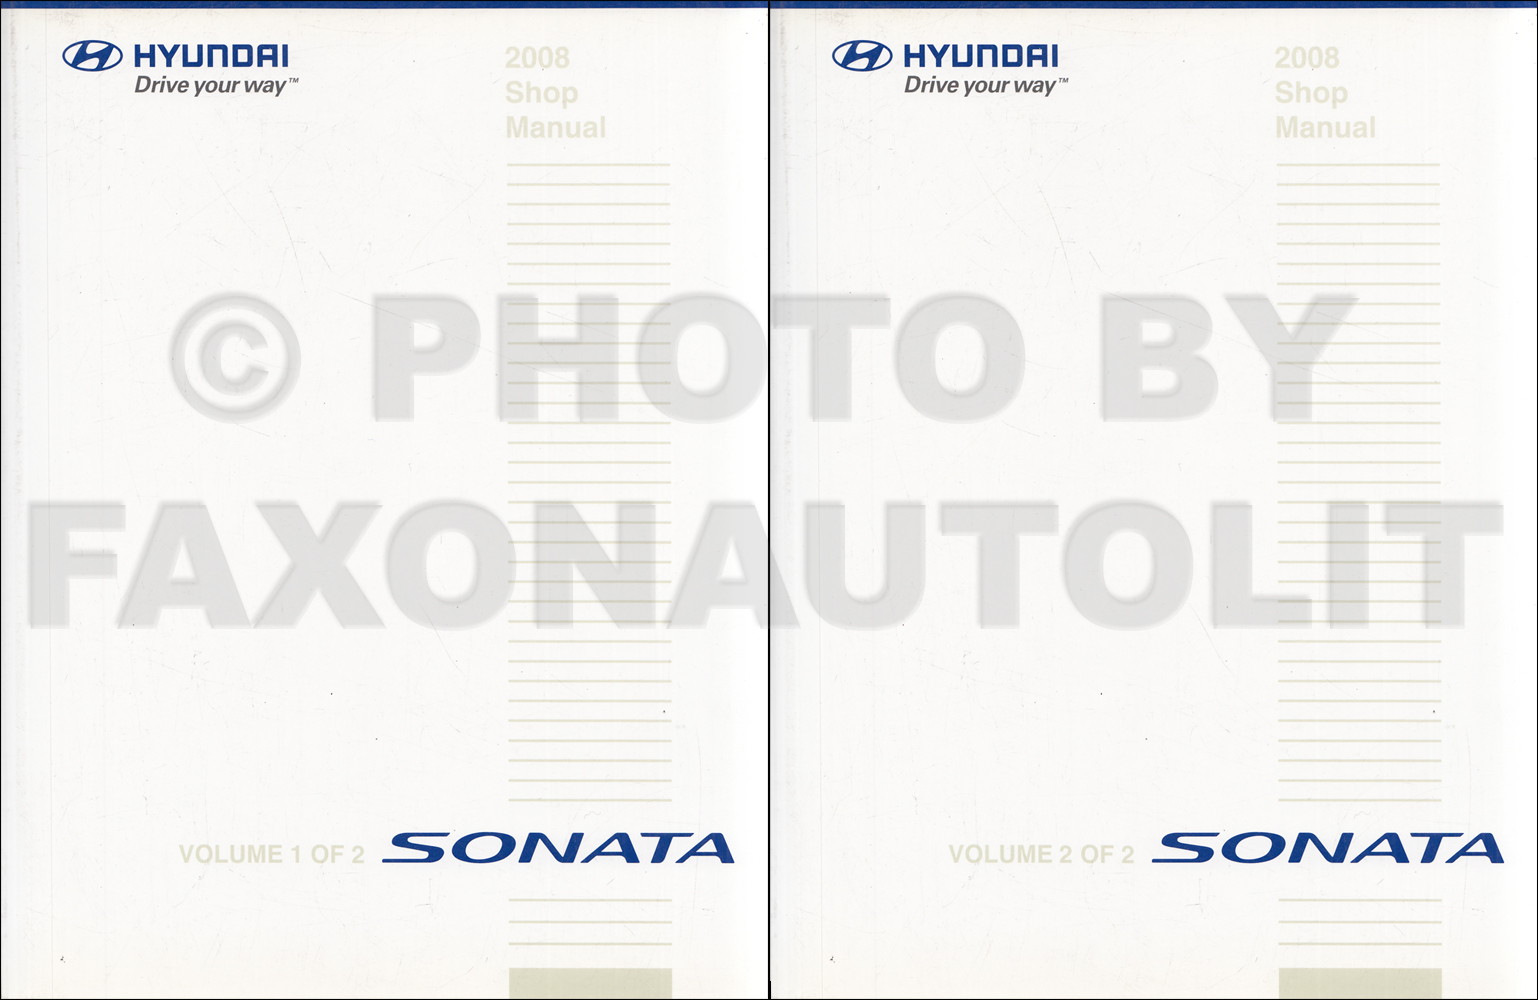 2008 Hyundai Sonata Electrical Troubleshooting Manual Original